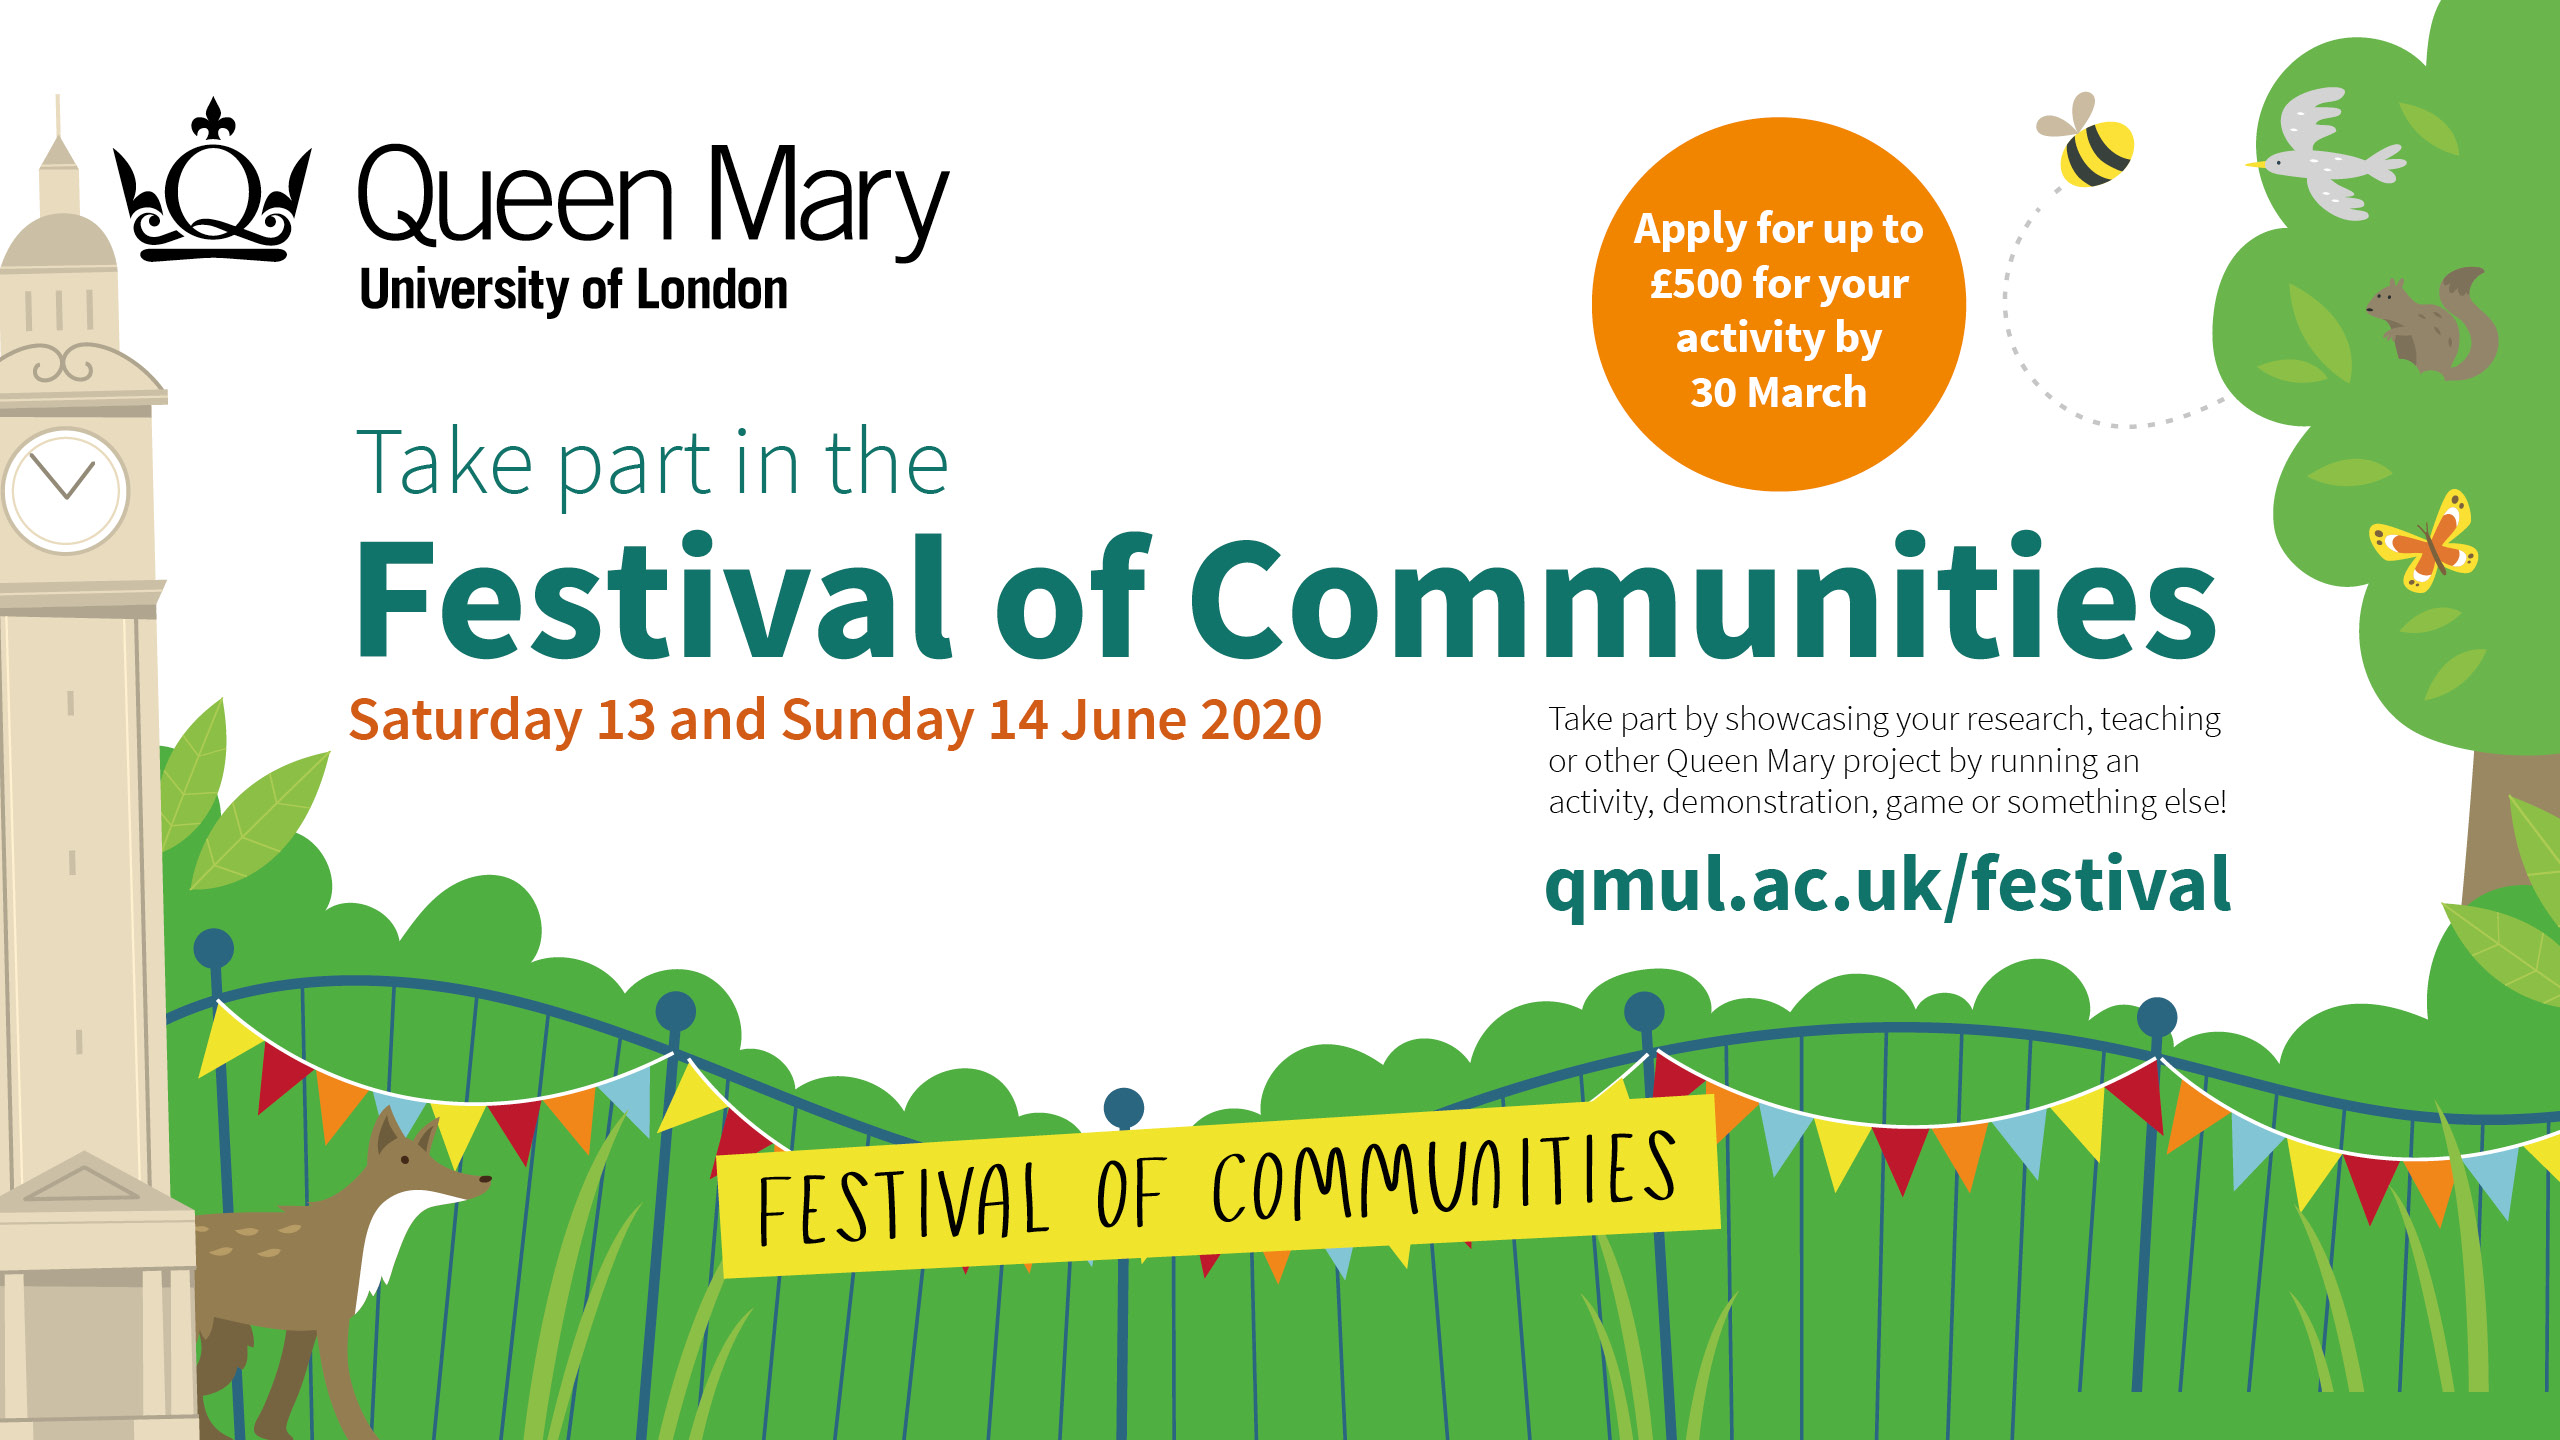 Details for 2020 Festival of Communities event at Queen Mary